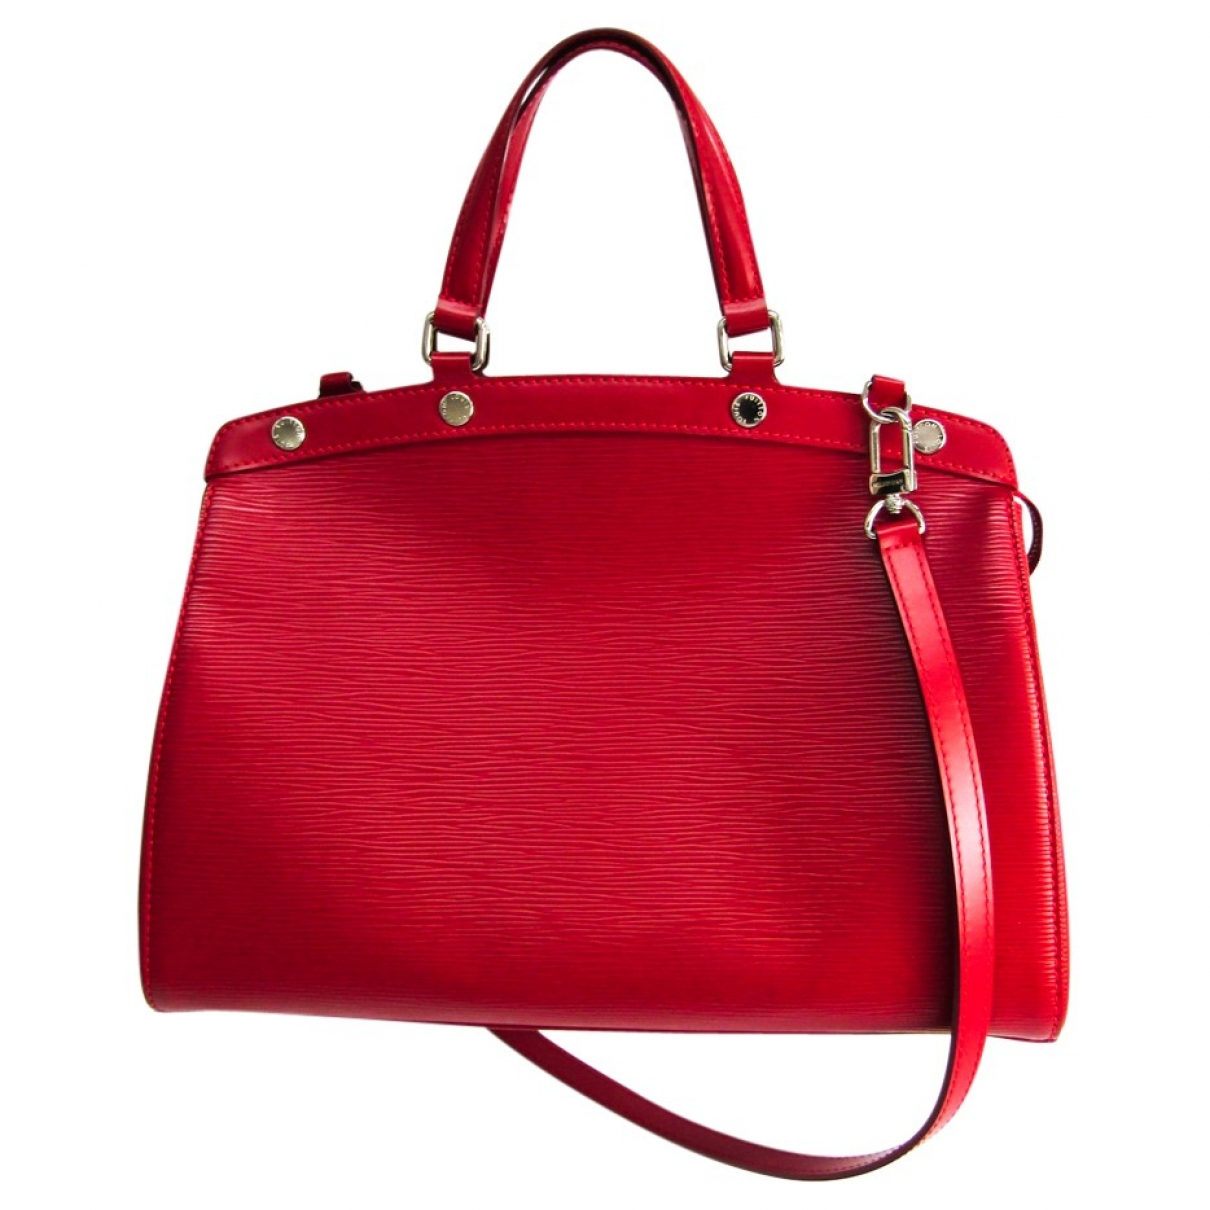 Louis Vuitton Bréa Red Leather handbag for Women \N